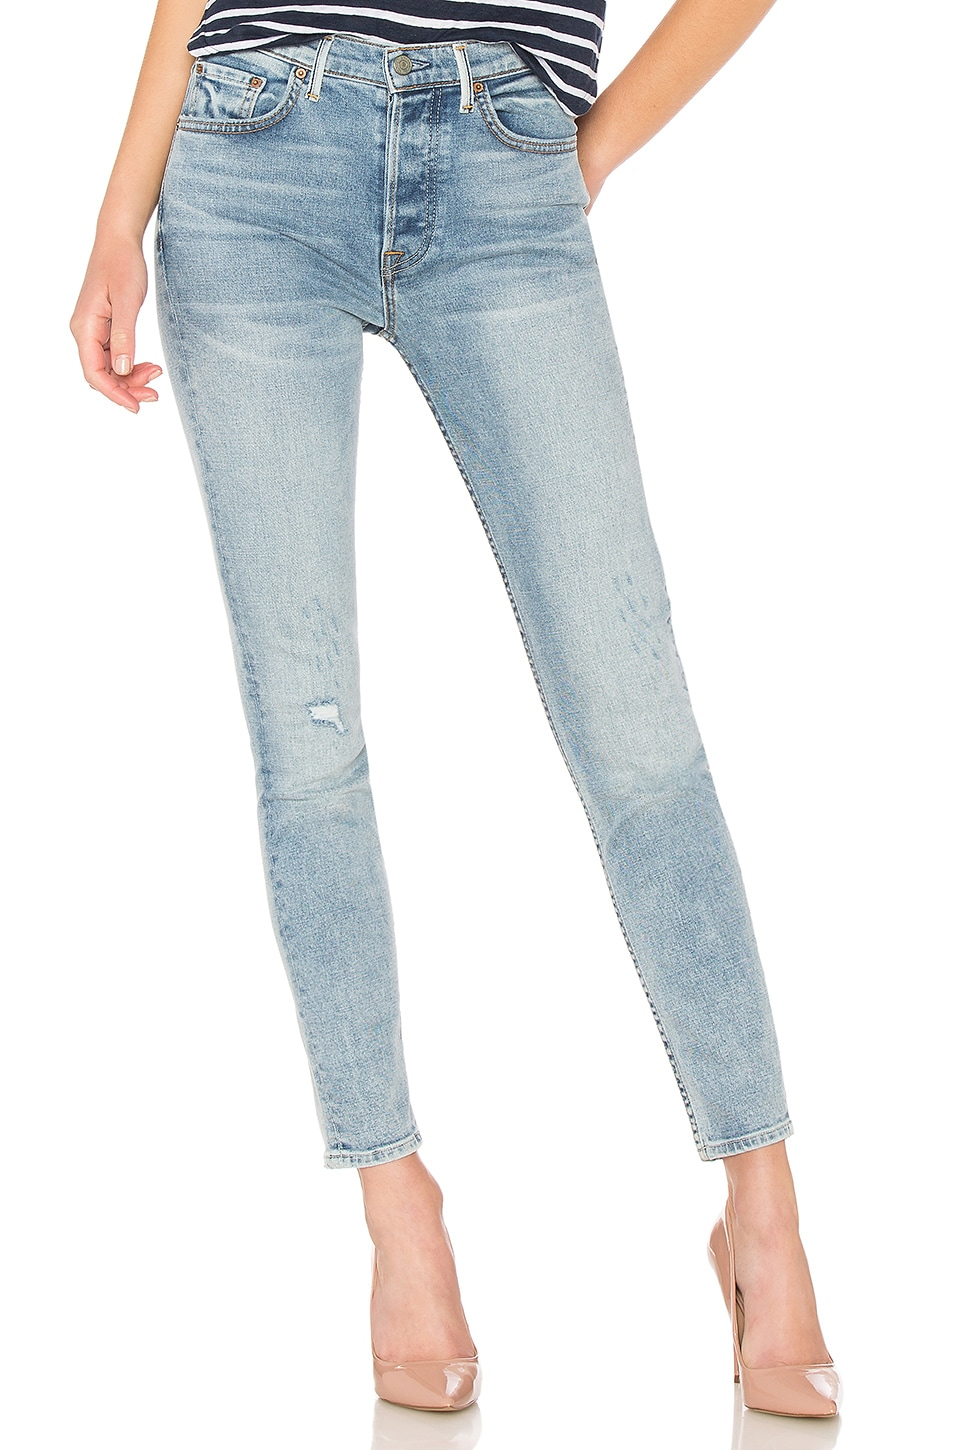 GRLFRND Karolina High-Rise Crop Jean in Go Low